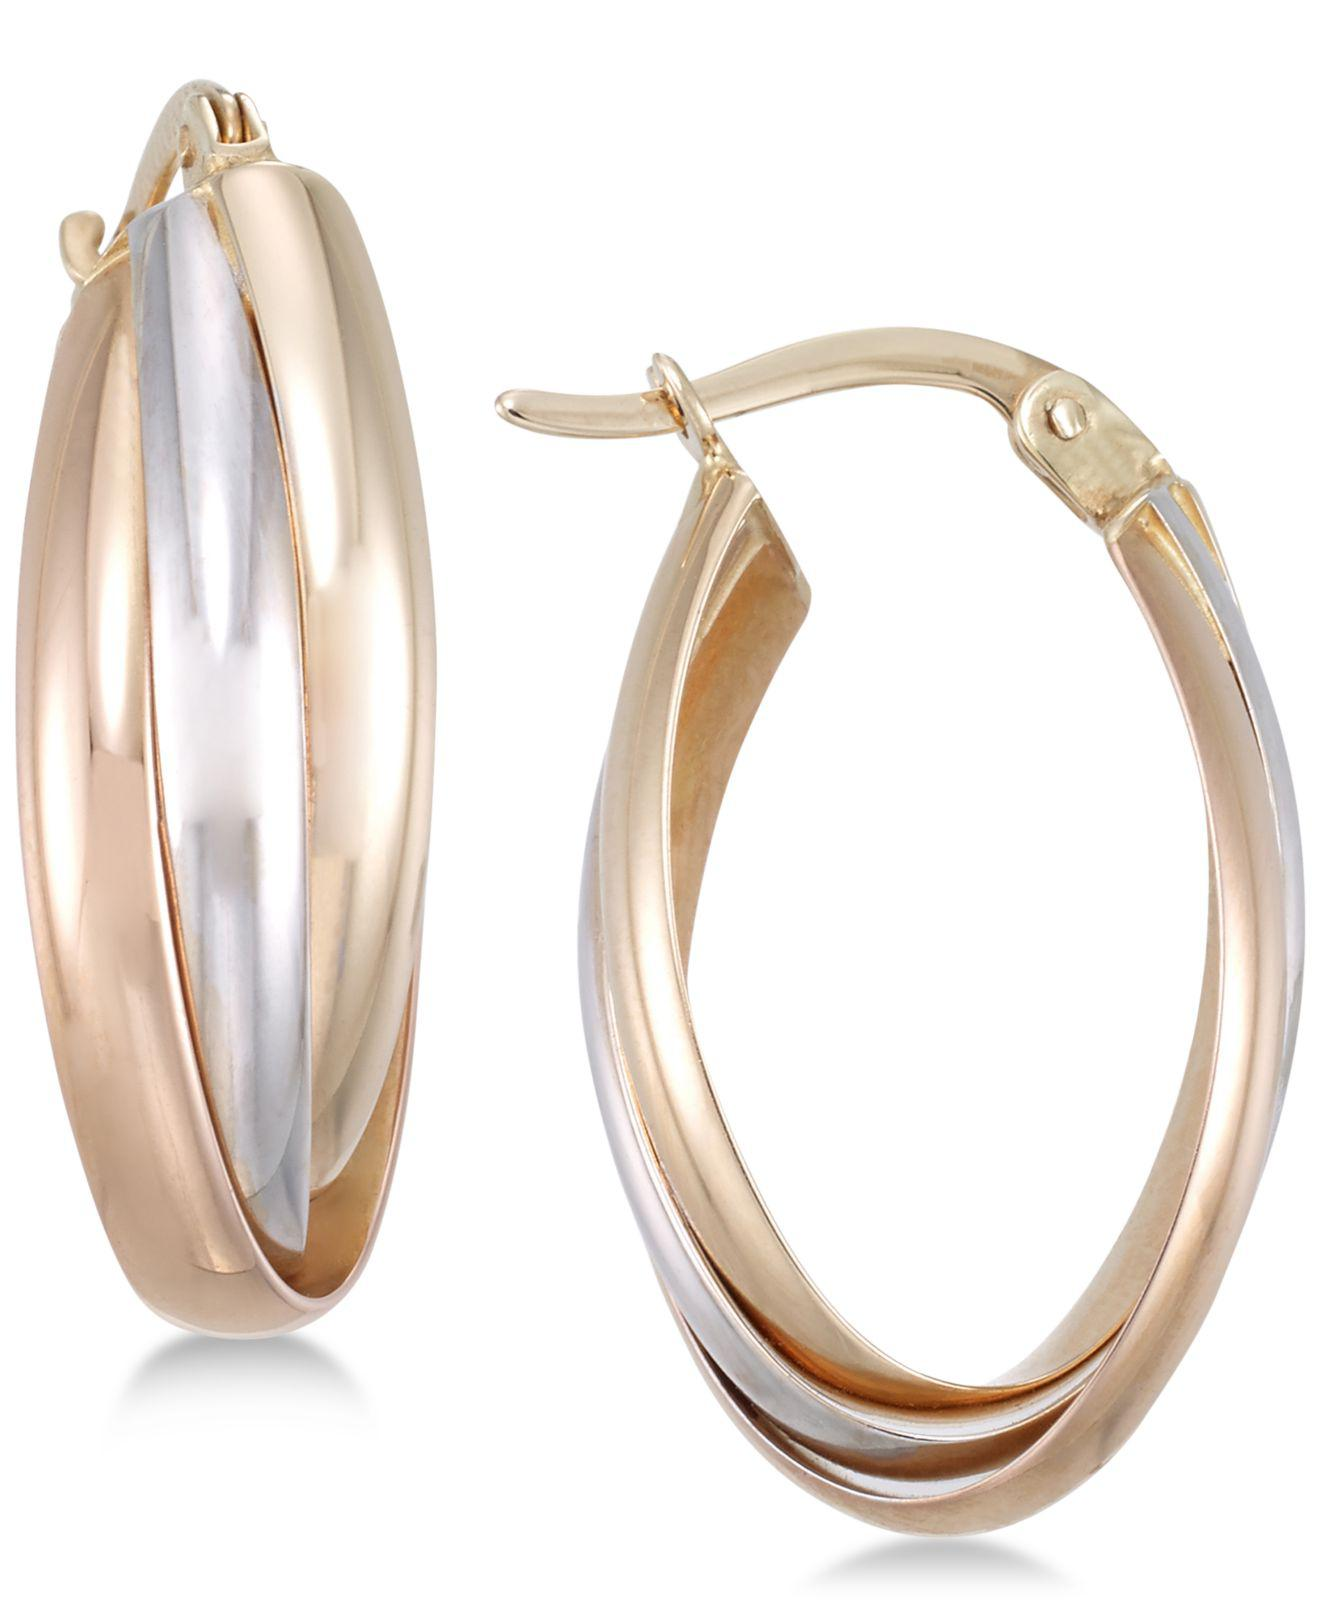 93fbdf20bd697 Women's Metallic Tri-color Multi-ring Interlocked Hoop Earrings In 14k  Yellow, White And Rose Gold